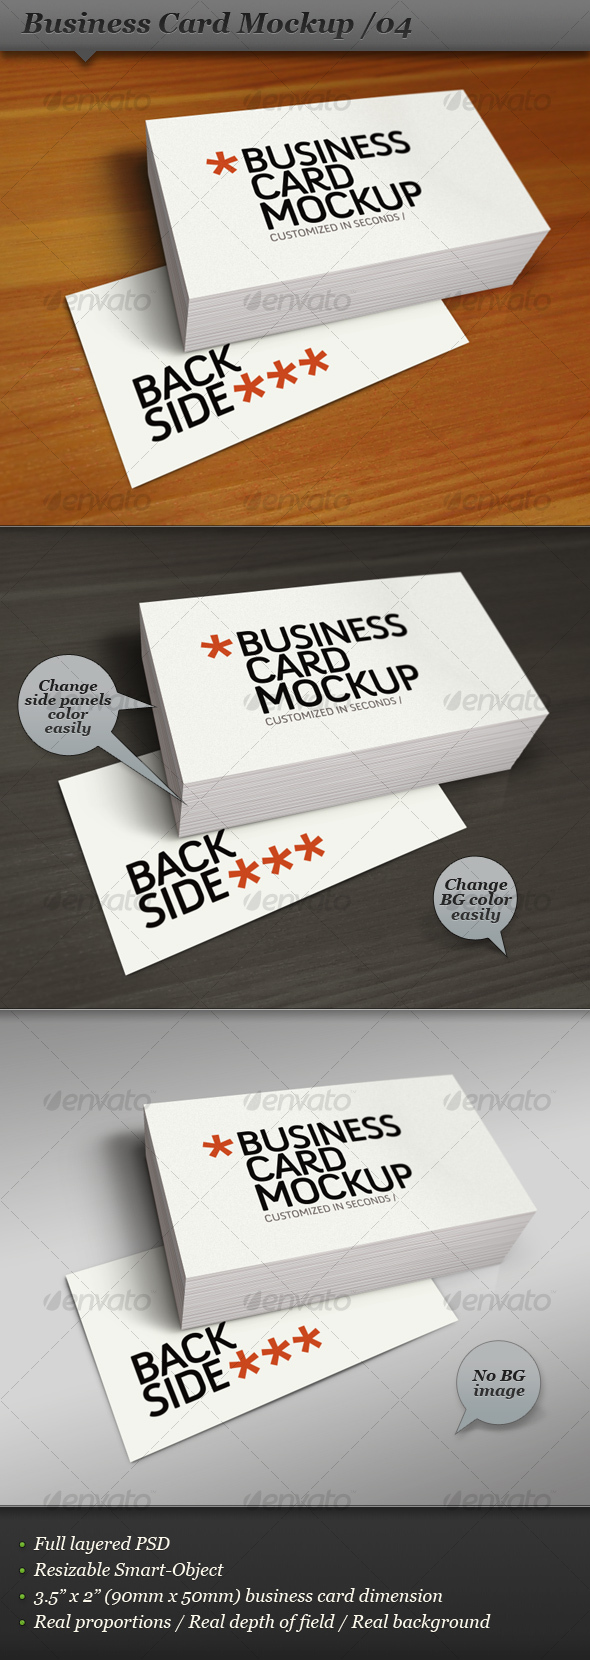 Business card mockup display smart template 04 by ranfirefly business card mockup display smart template 04 business cards print wajeb